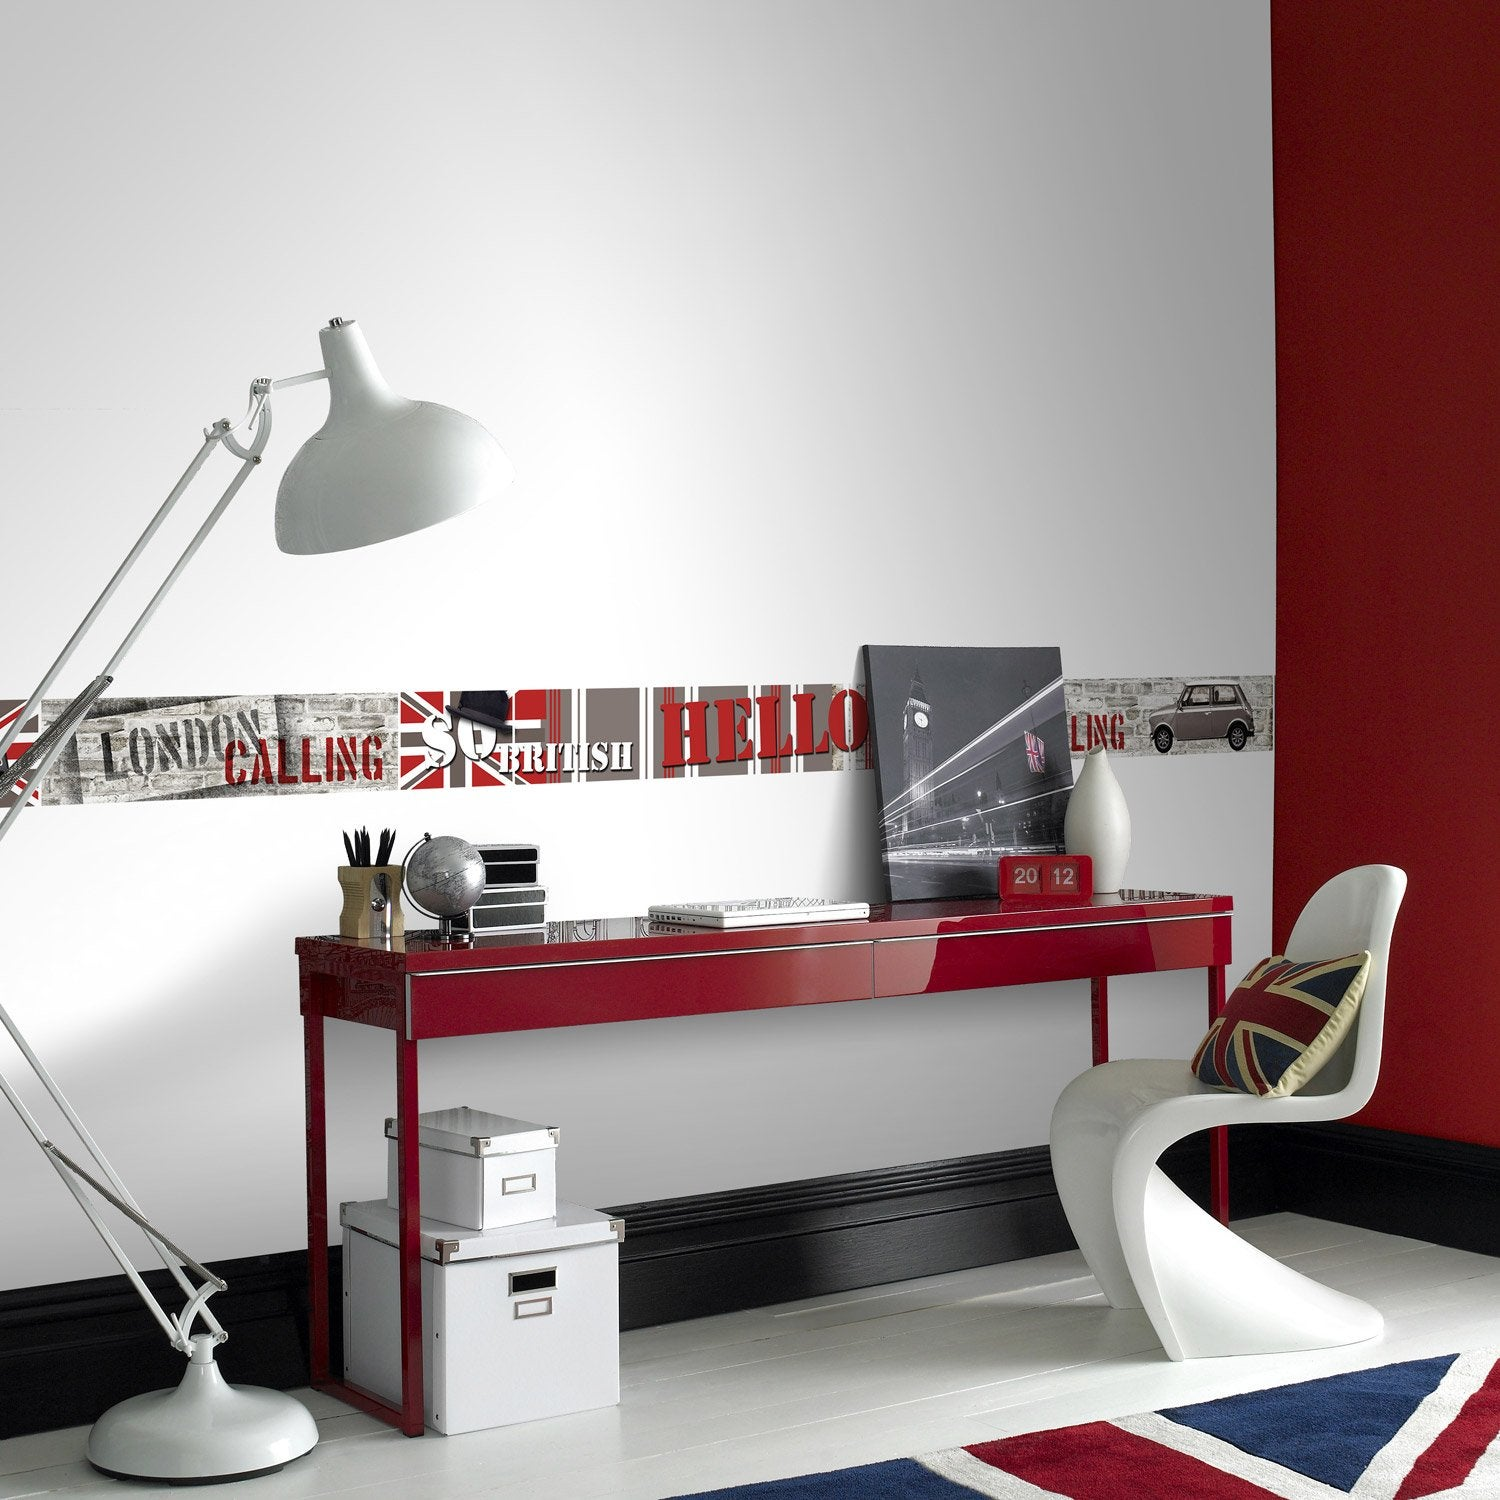 frise vinyle adh sive london travel l 5 m x cm leroy merlin. Black Bedroom Furniture Sets. Home Design Ideas